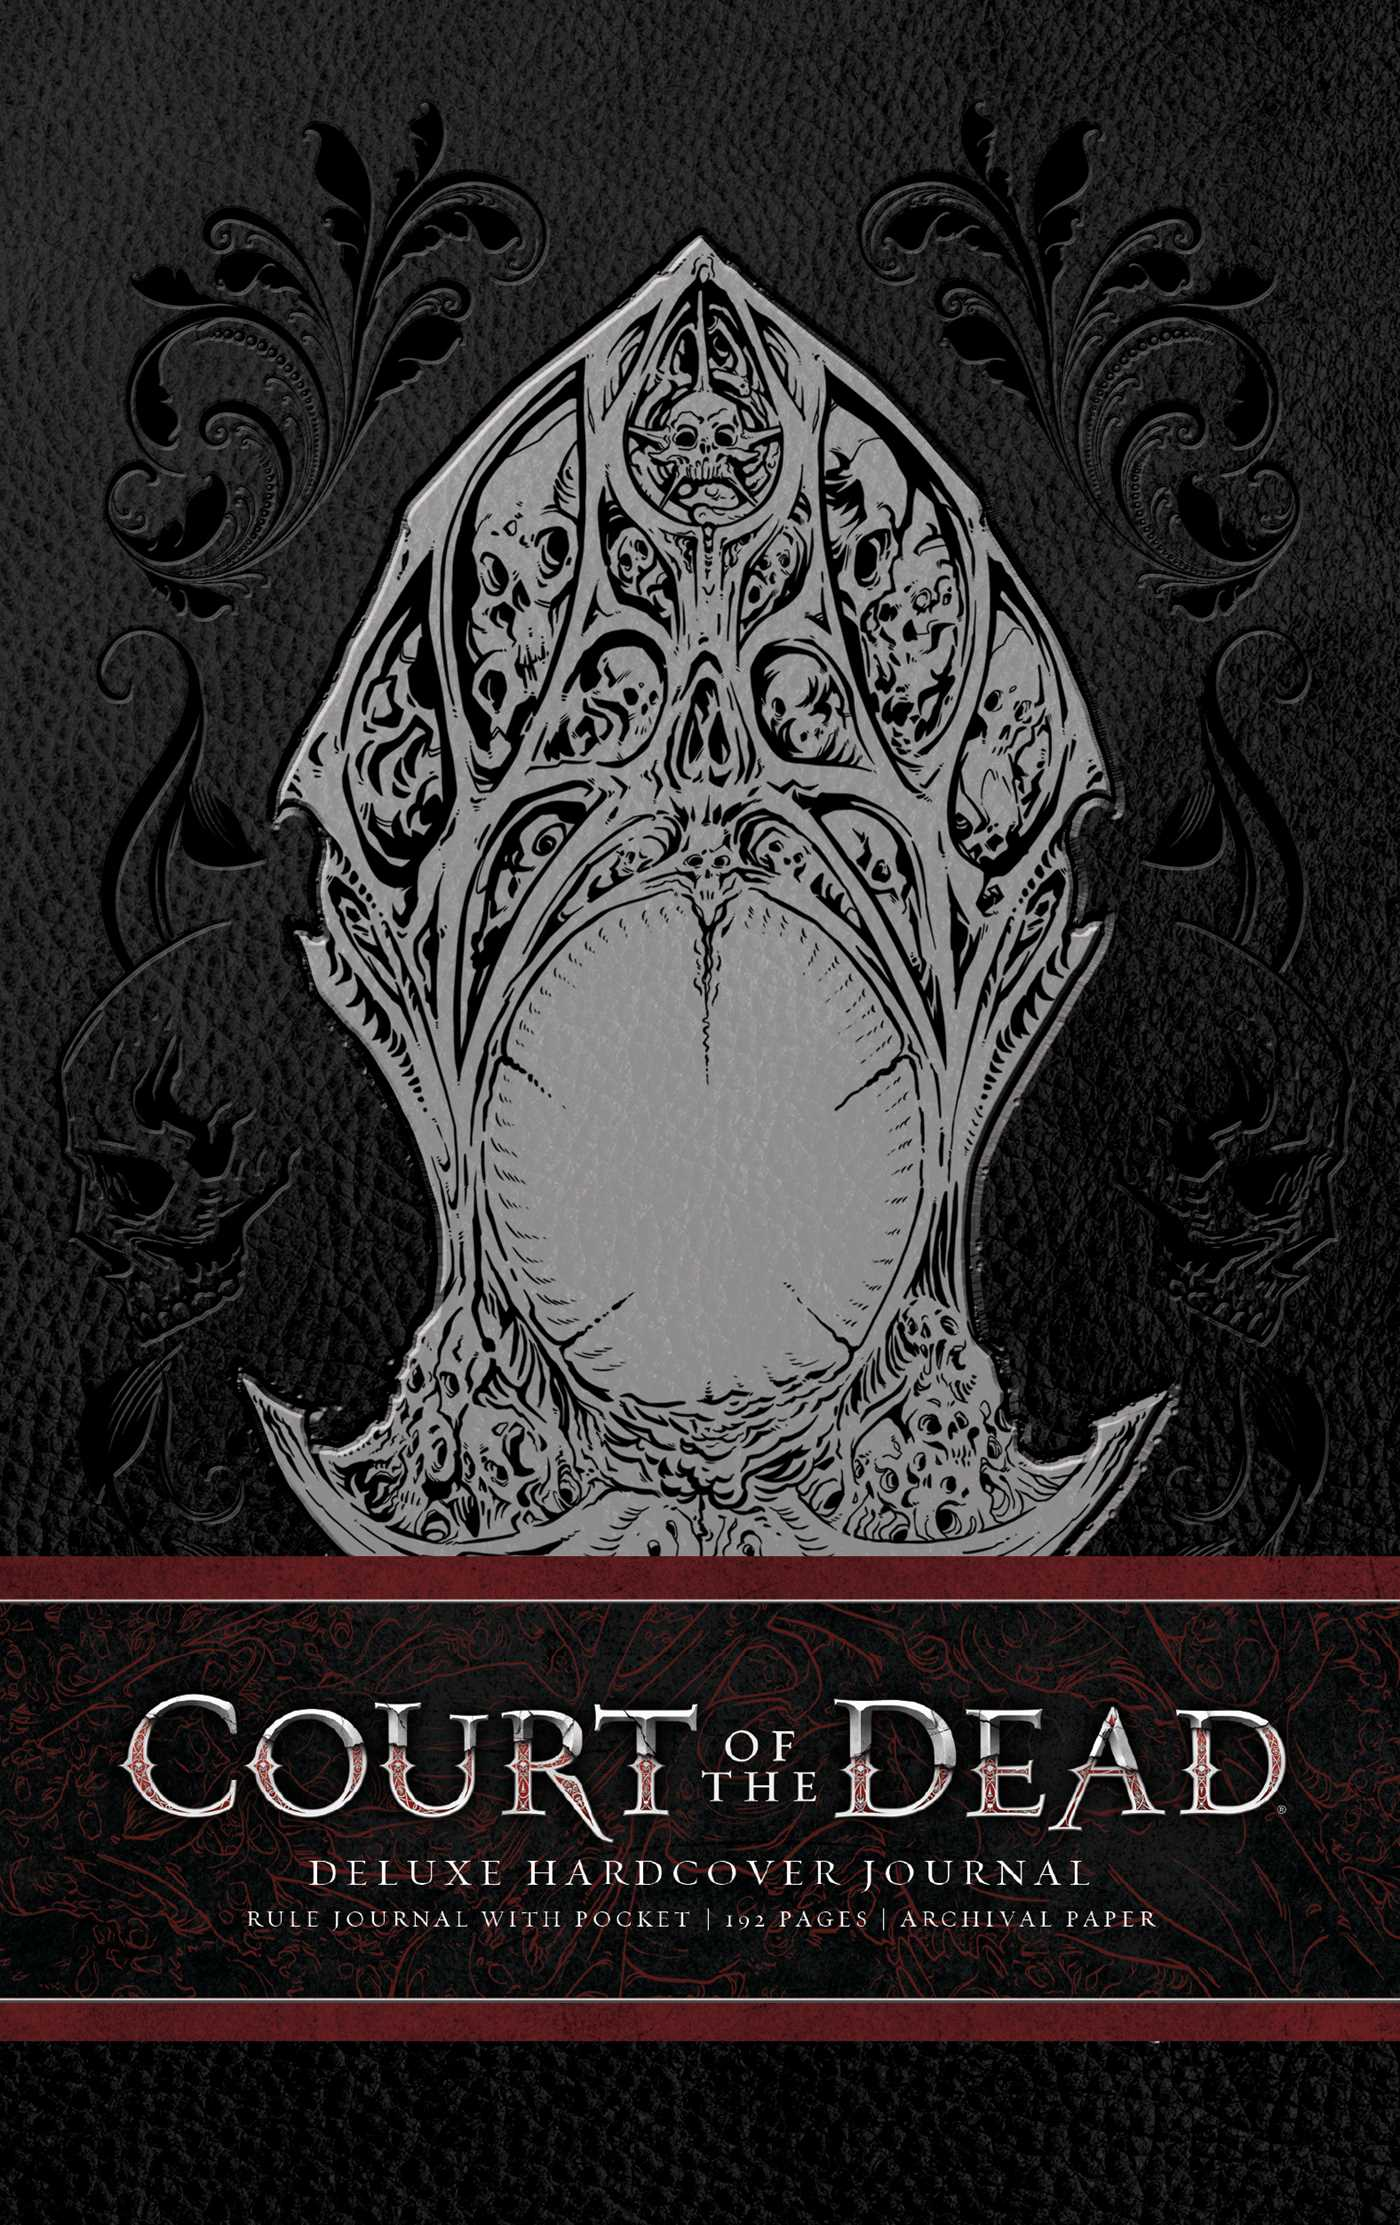 Court of the dead hardcover ruled journal 9781683831228 hr